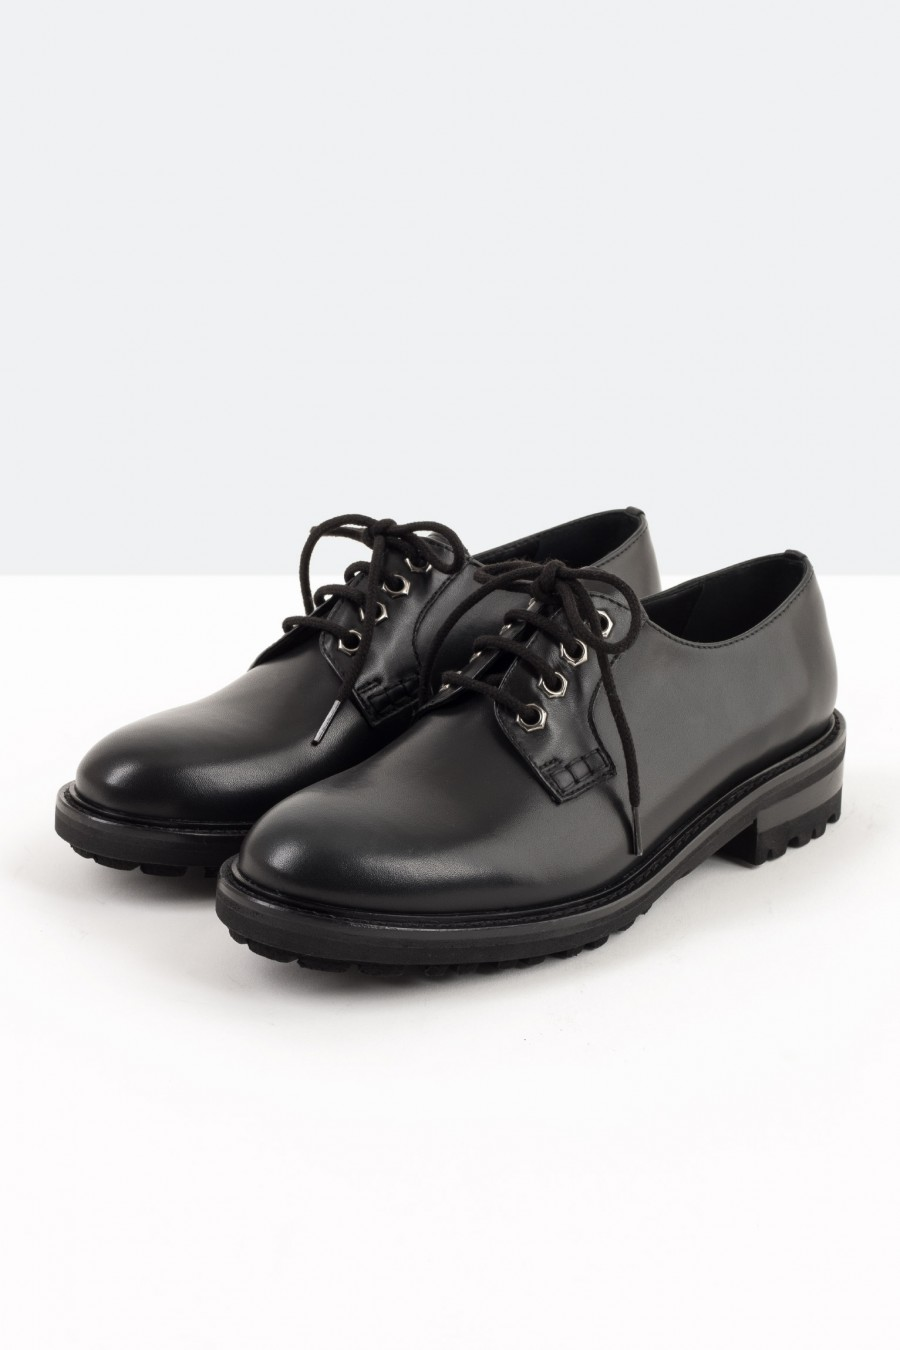 Derby shoes with cleated sole